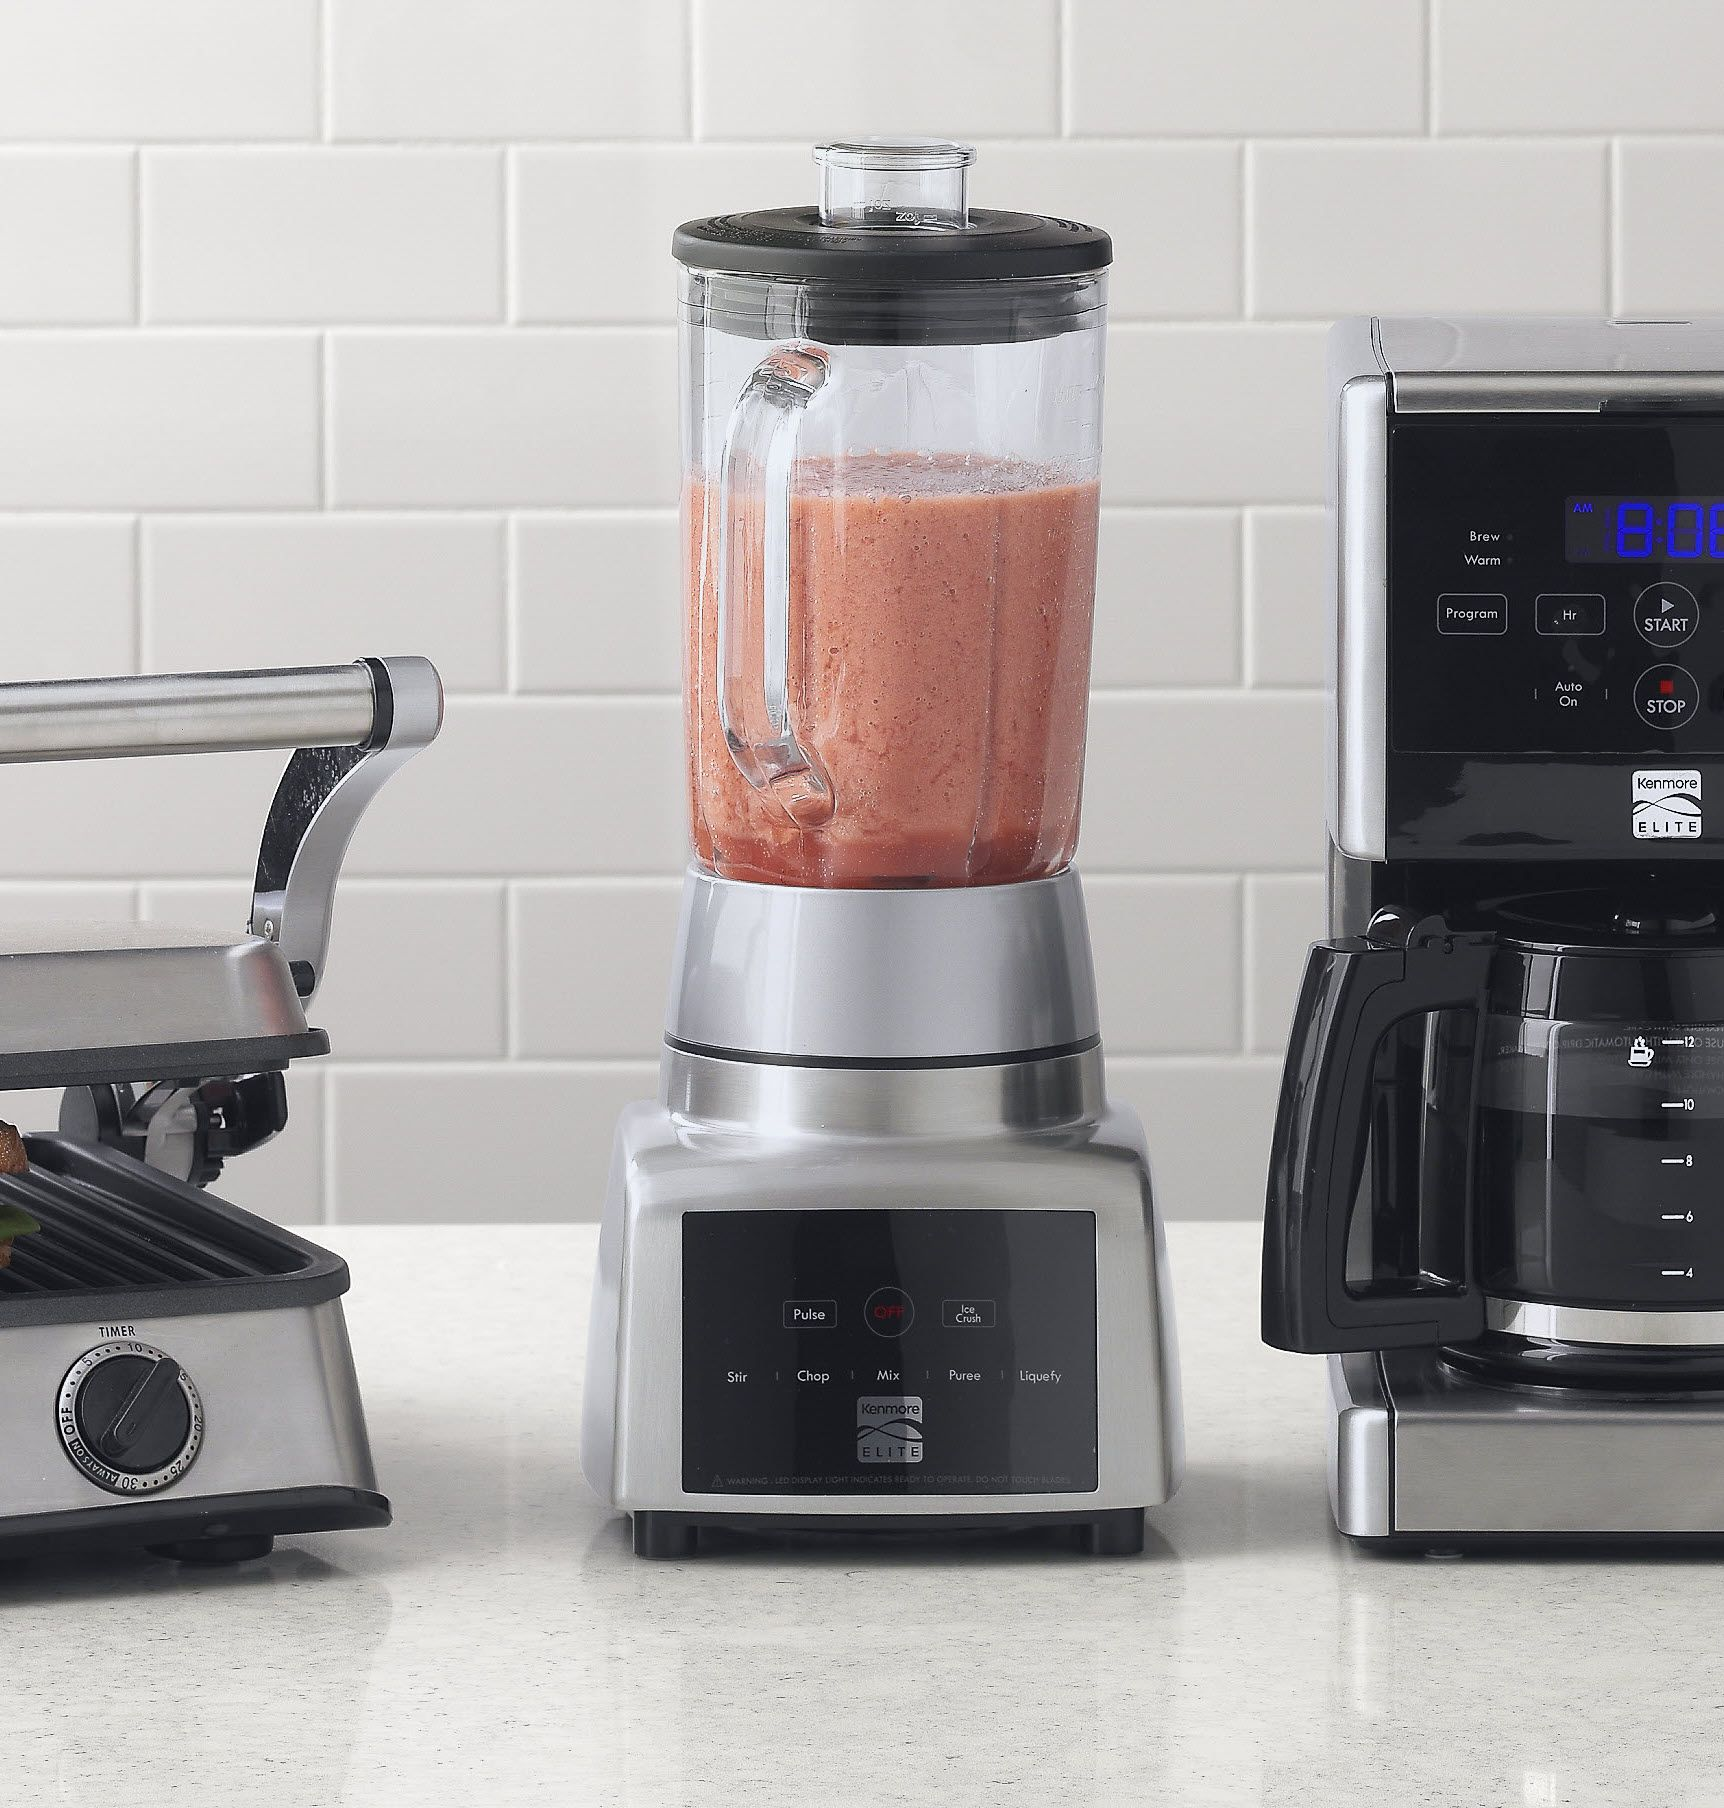 Kenmore Elite 900 Watt Brushed Aluminum Blender